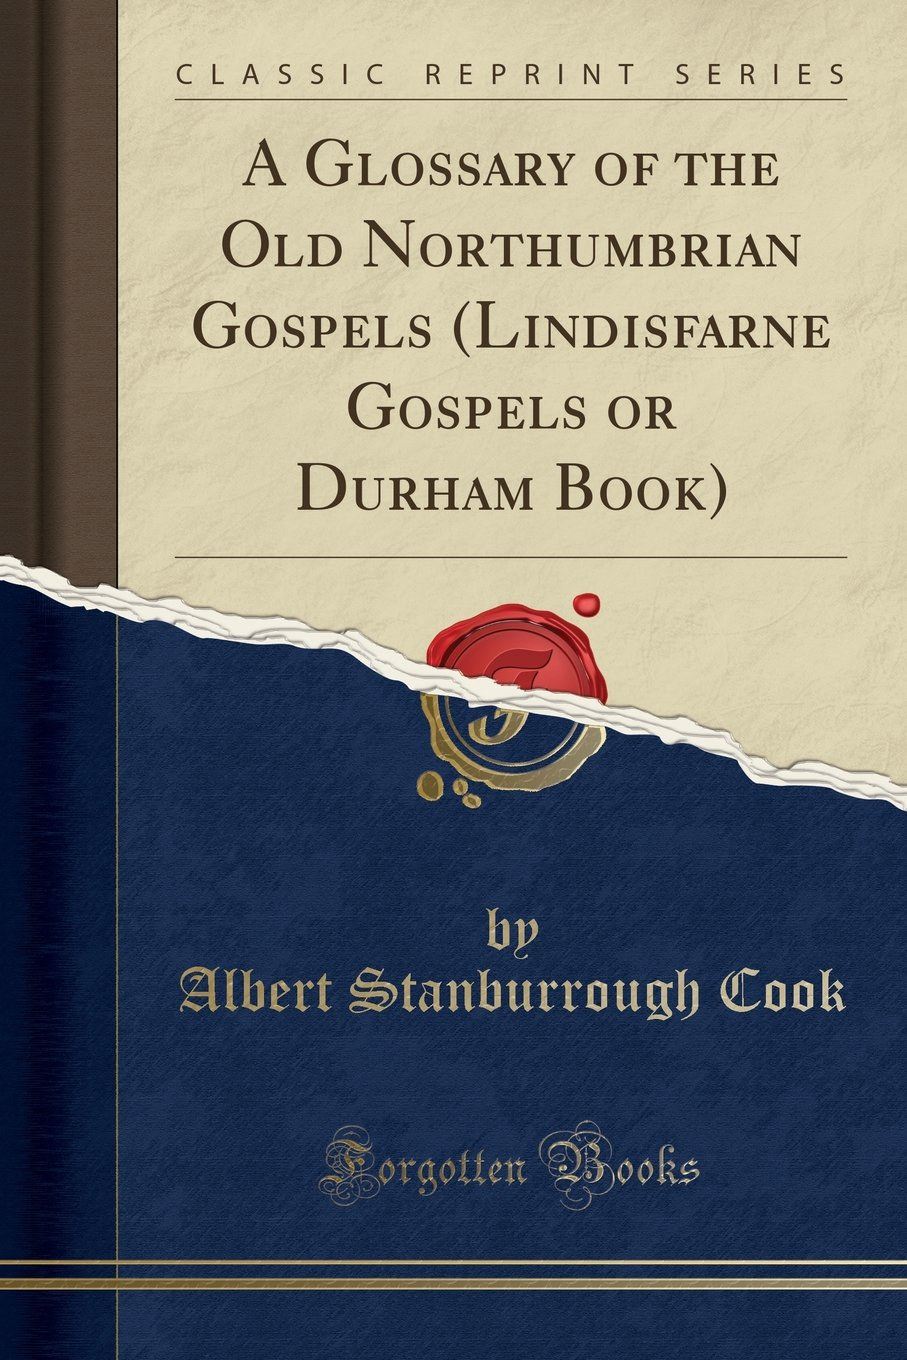 A Glossary of the Old Northumbrian Gospels (Lindisfarne Gospels or Durham  Book) (Classic Reprint): Amazon.co.uk: Albert Stanburrough Cook:  9781527885516: ...